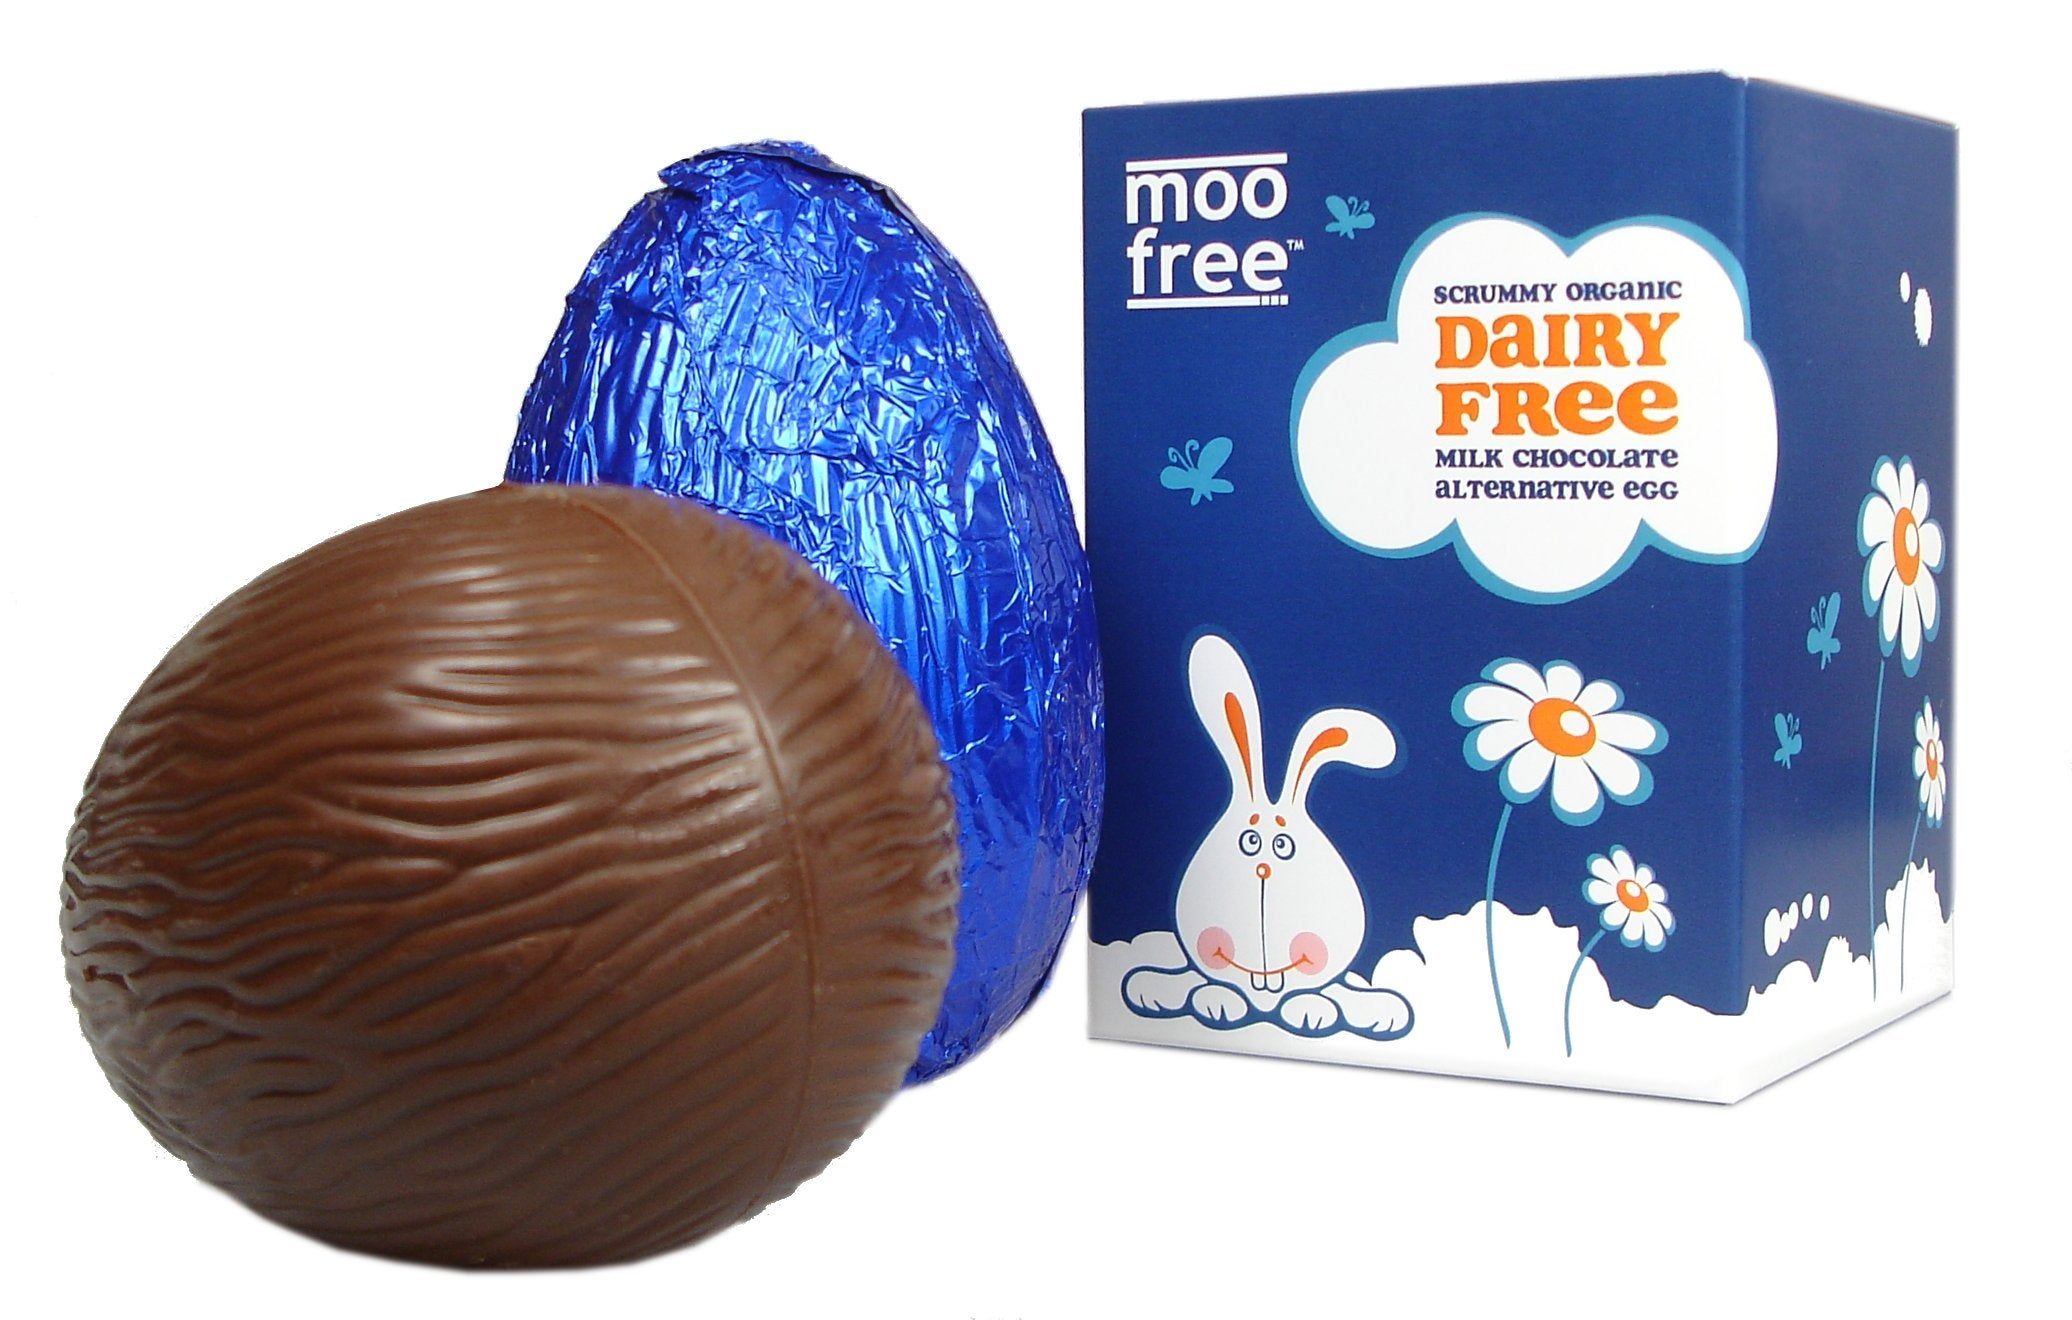 Easter 2015 7 best dairy free eggs the independent negle Images